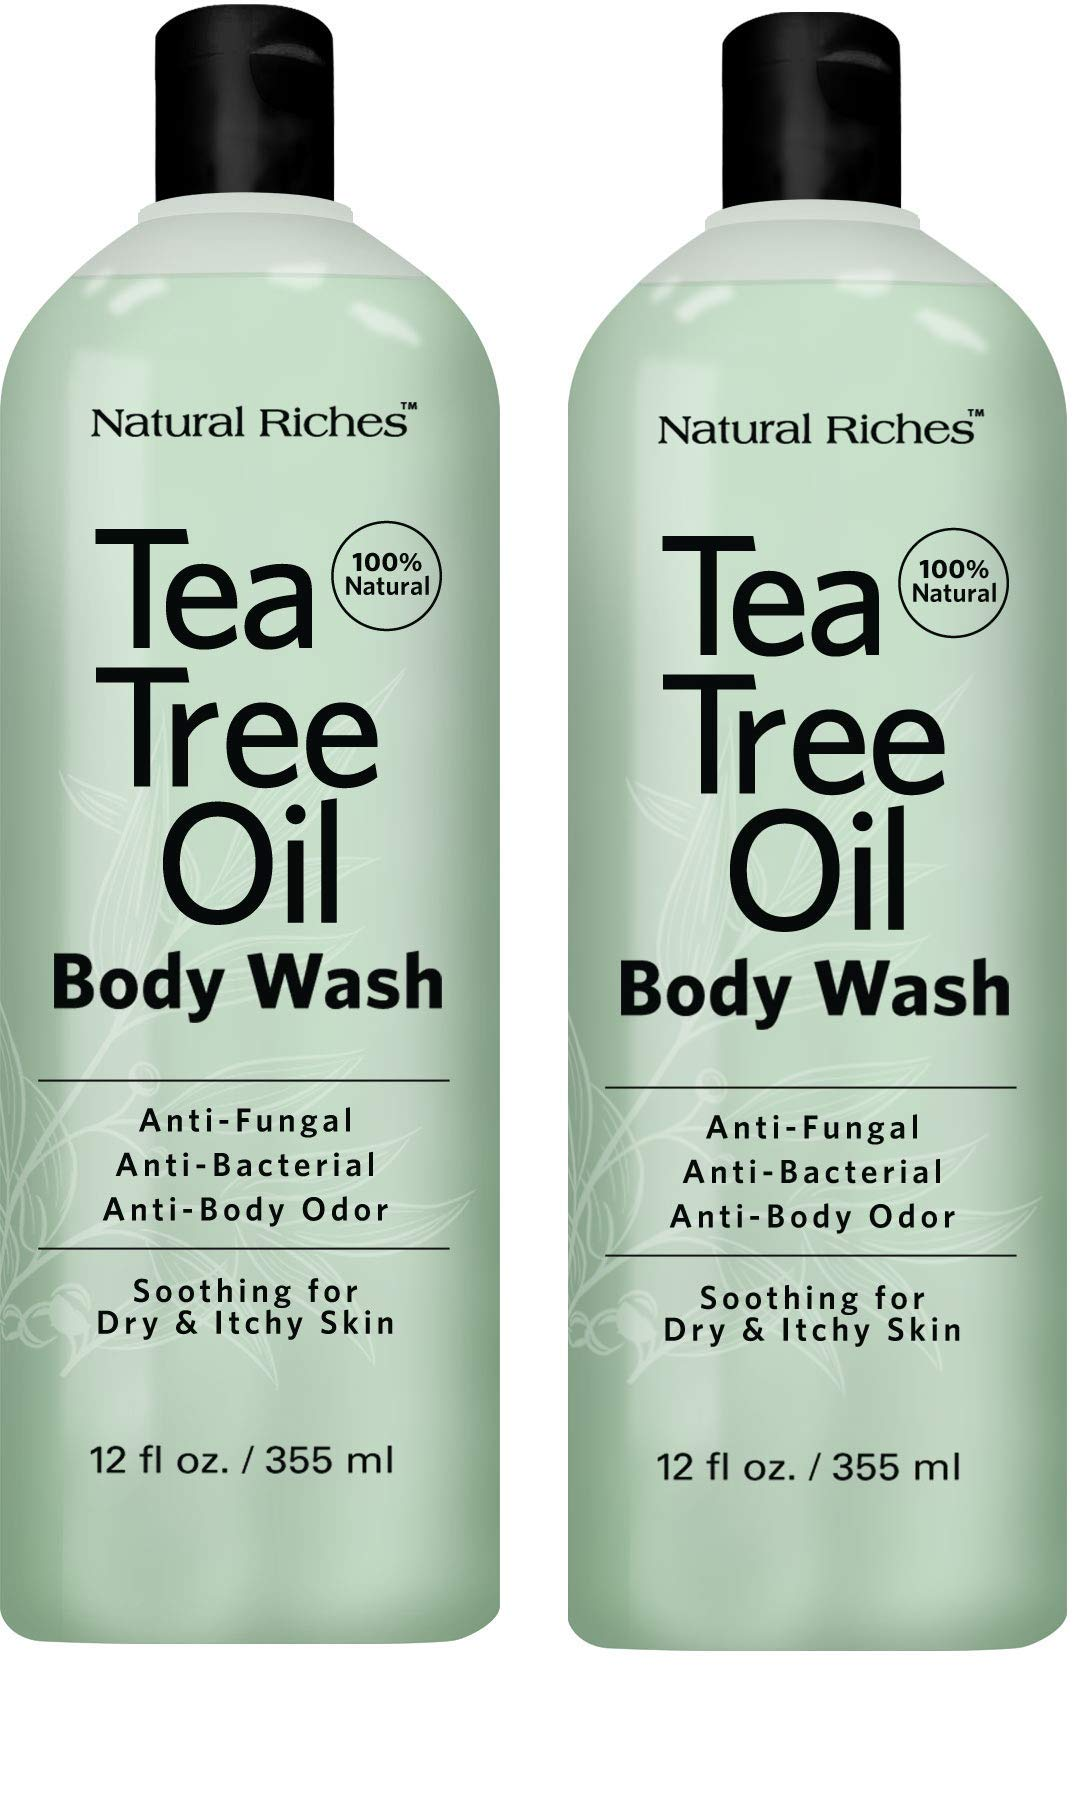 Antifungal TeaTree Oil Body Wash, Peppermint & Eucalyptus Oil Antibacterial Soap by Natural Riches -12 oz Helps Athletes Foot, Eczema, Ringworm, Toenail Fungus, Jock itch, Body Itch (2 pack) by Natural Riches